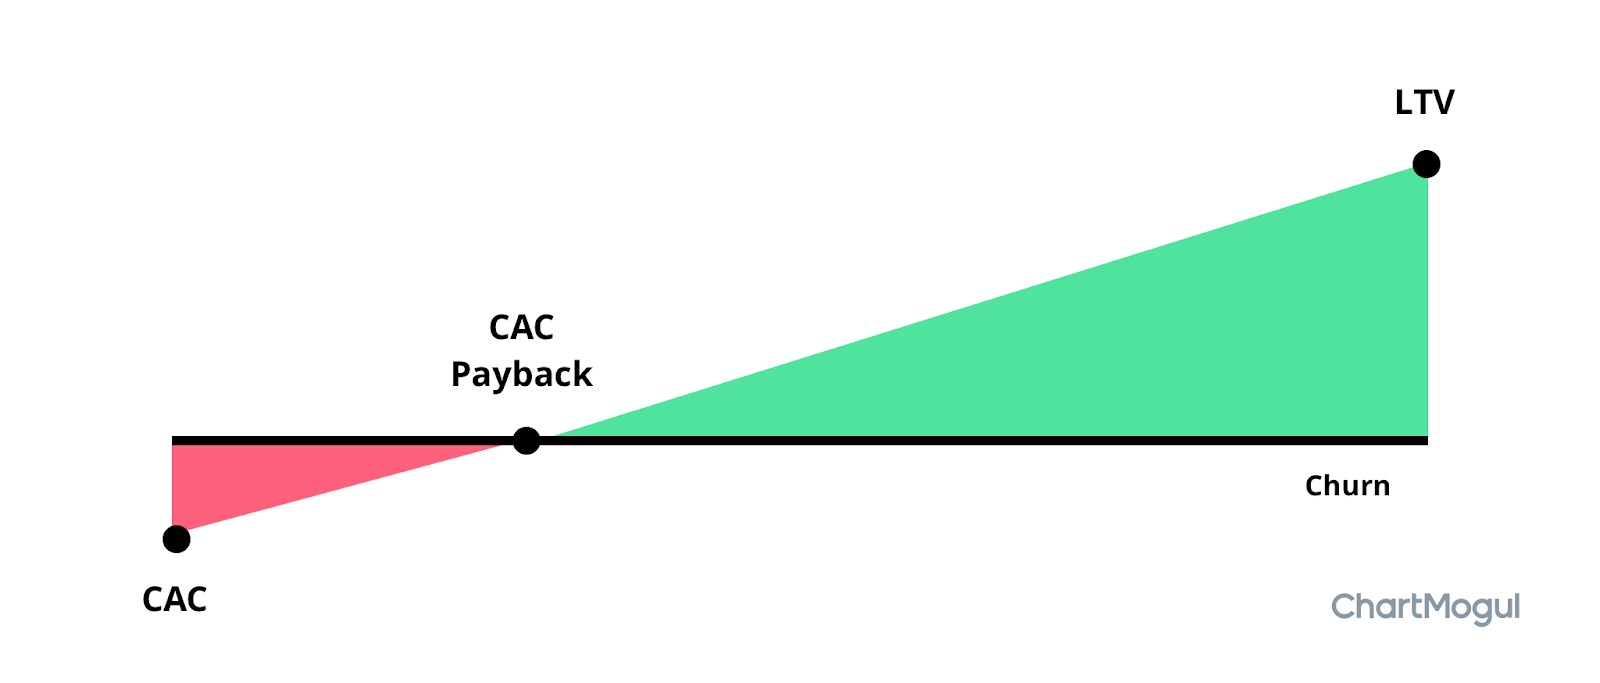 The SaaS business model relies on making up CAC over a long period and high LTV, making retention critical for success